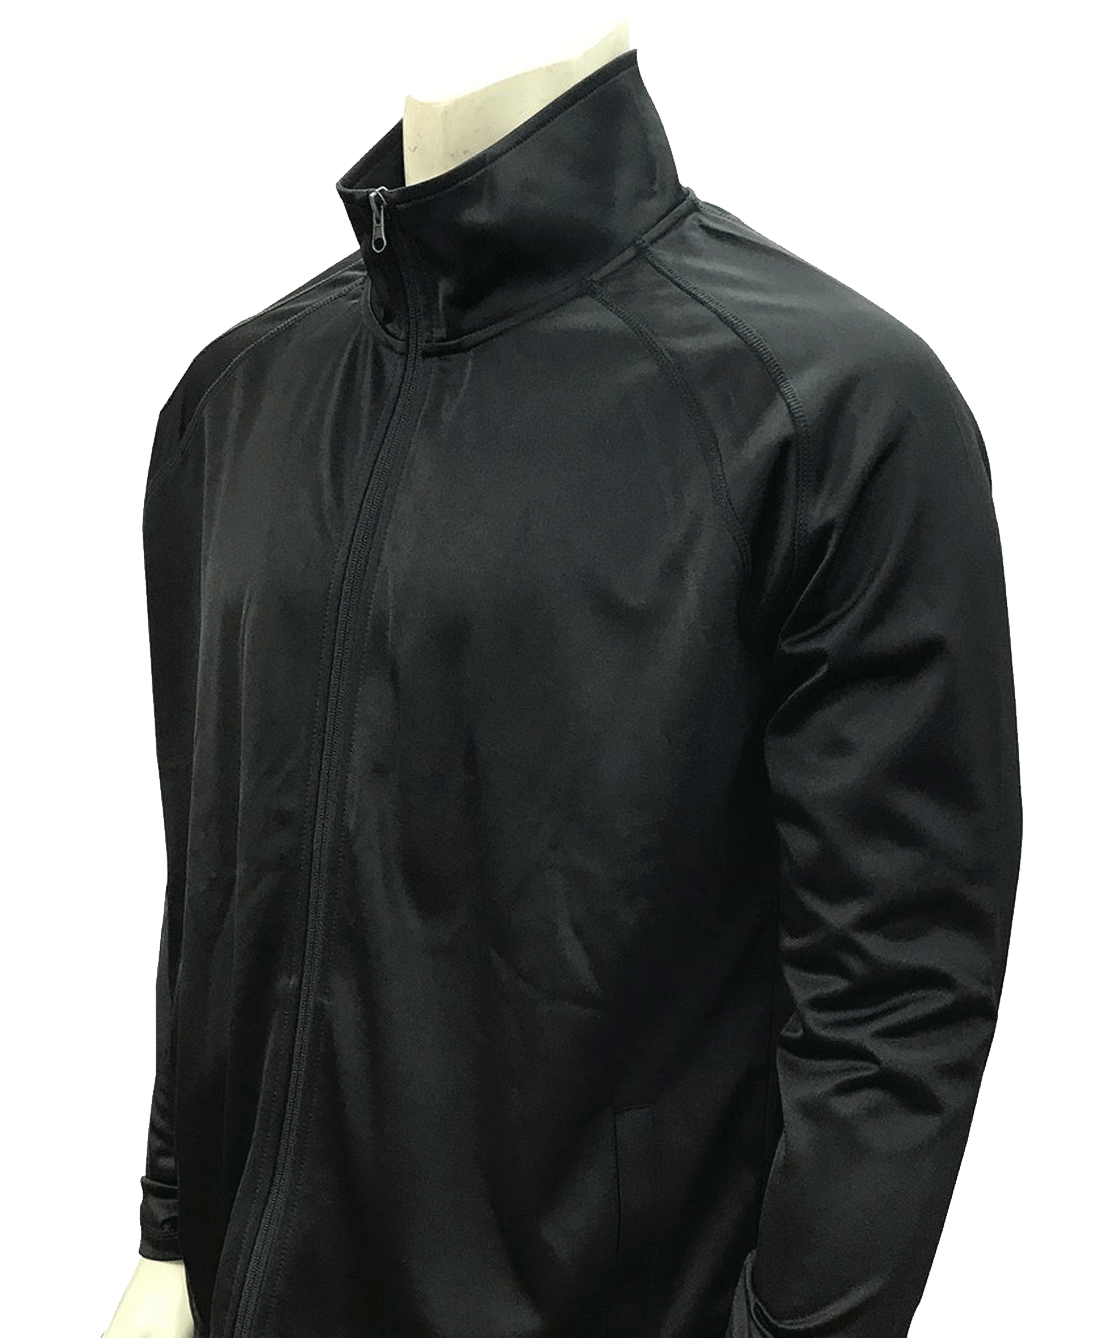 SMITTY Cadet Collar Courtside Jacket